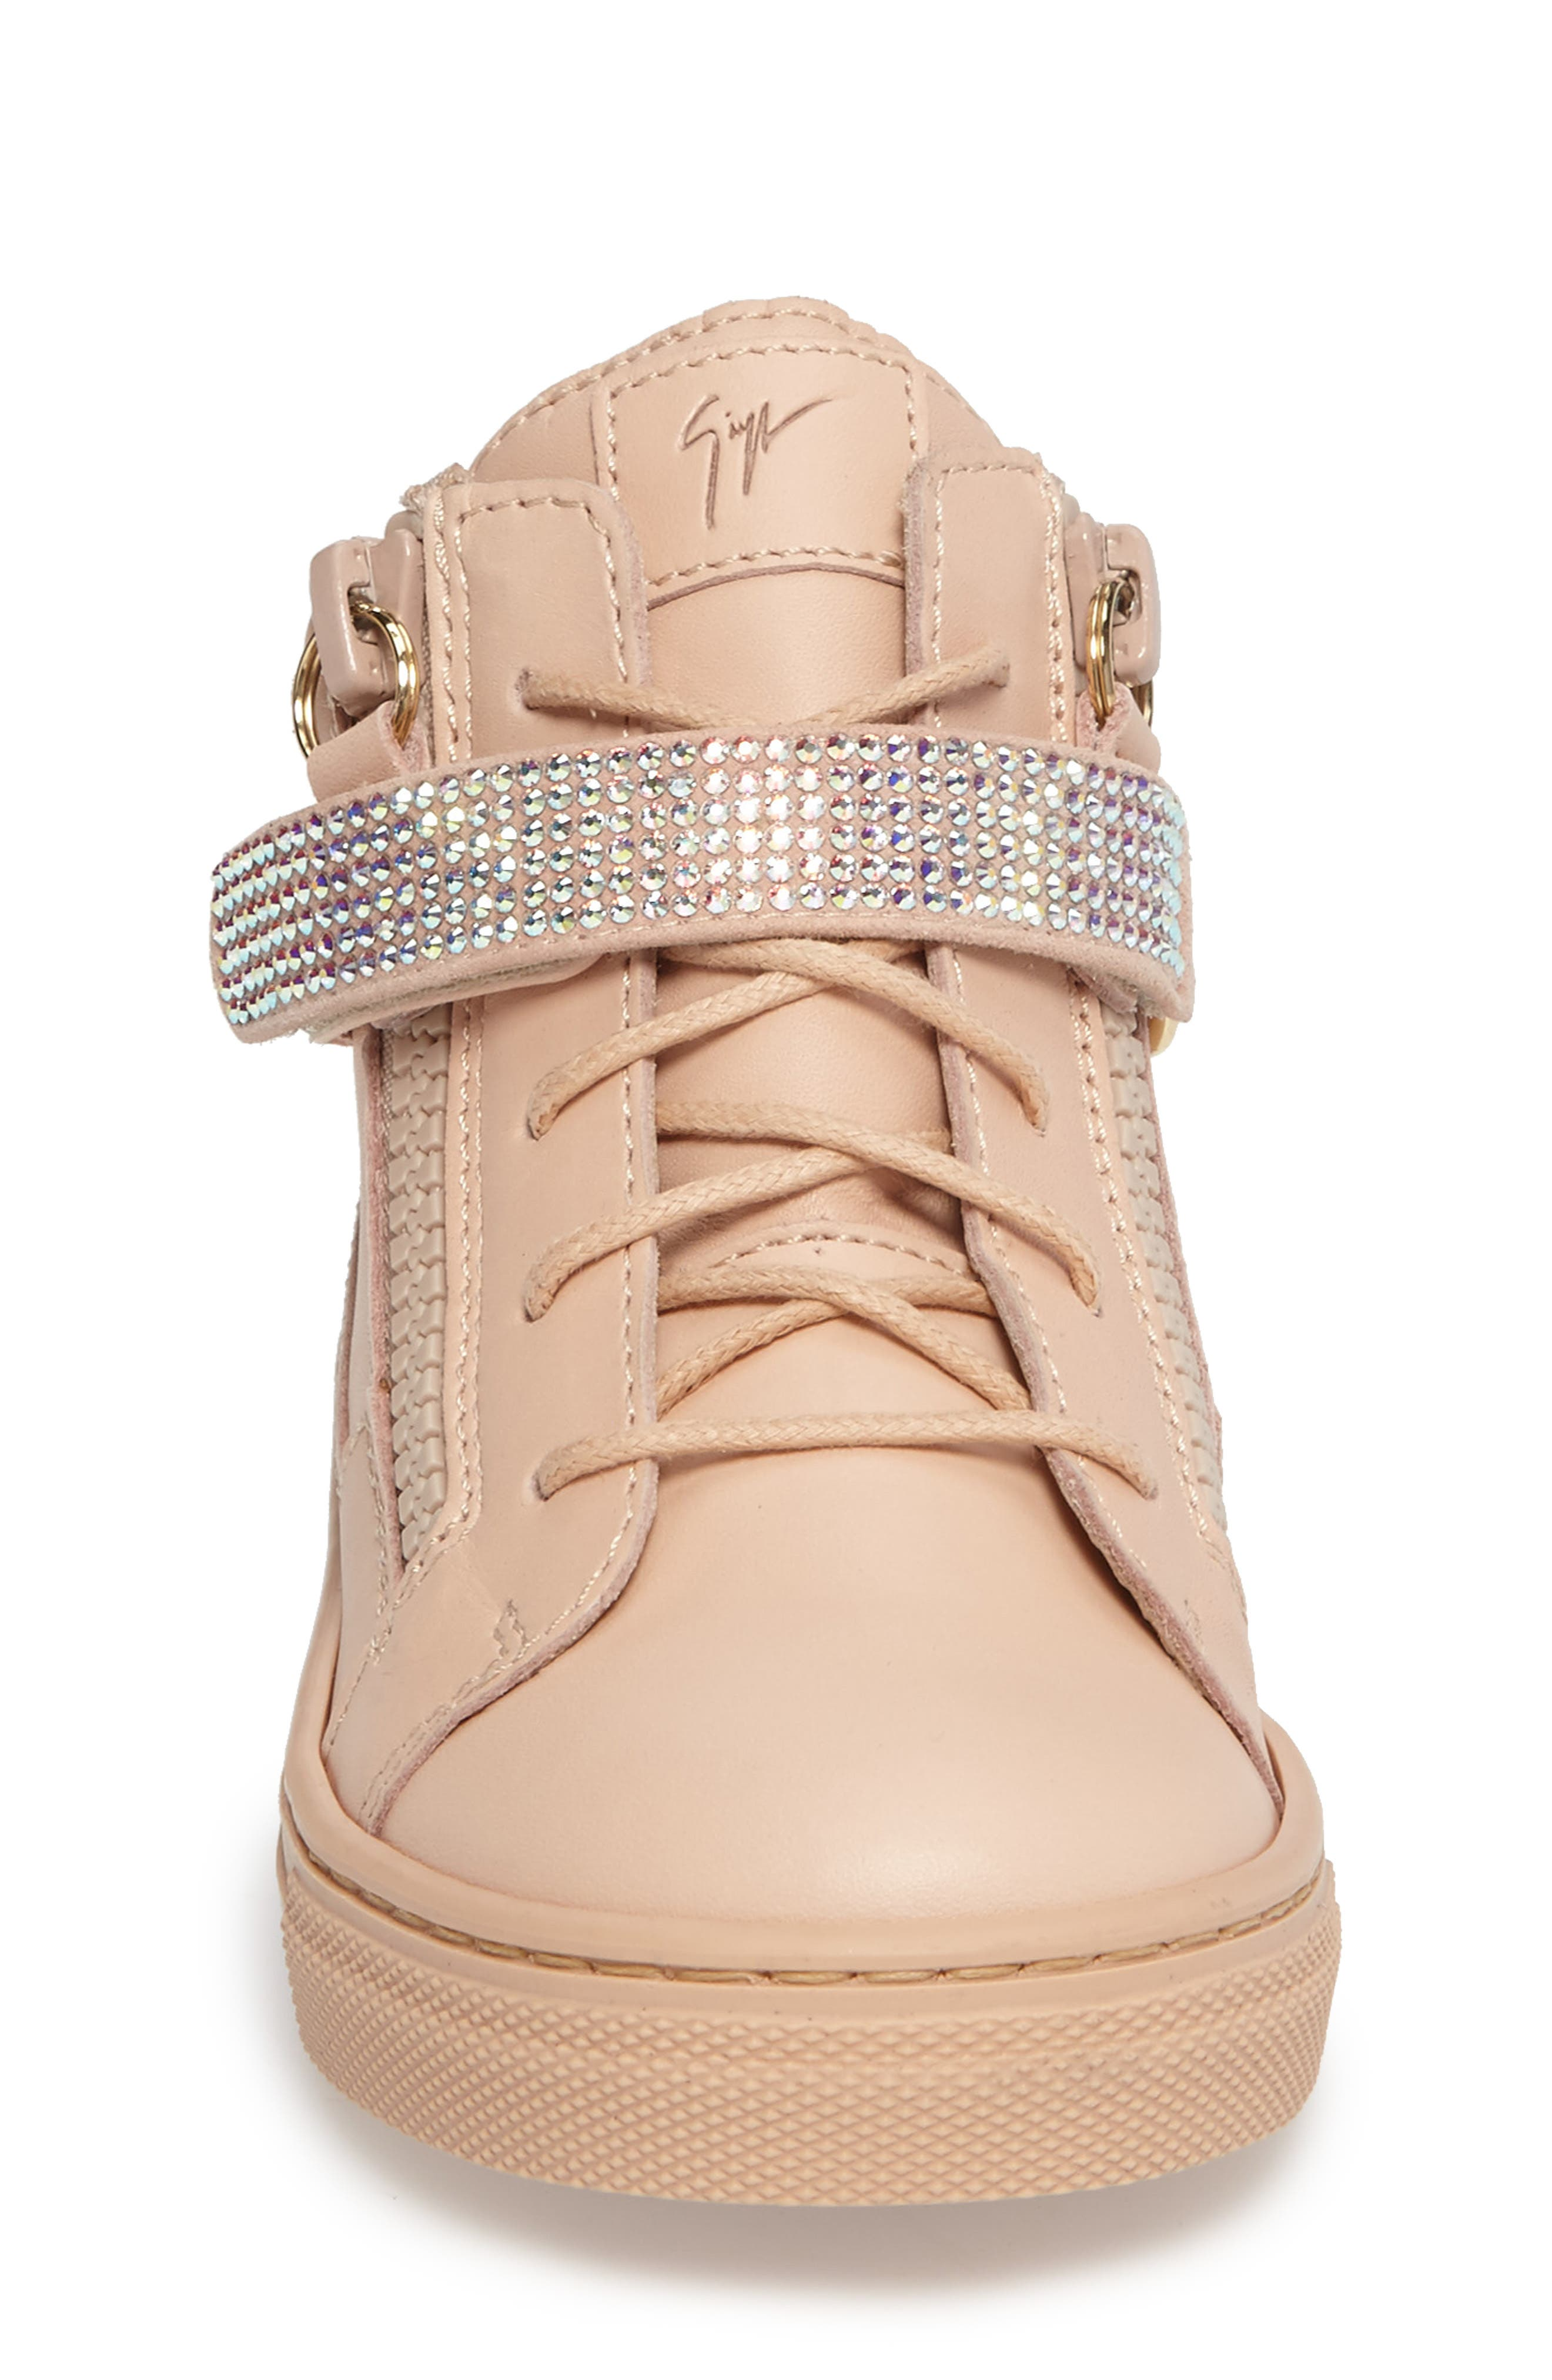 Swarovski Crystal Embellished High Top Sneaker,                             Alternate thumbnail 3, color,                             PINK